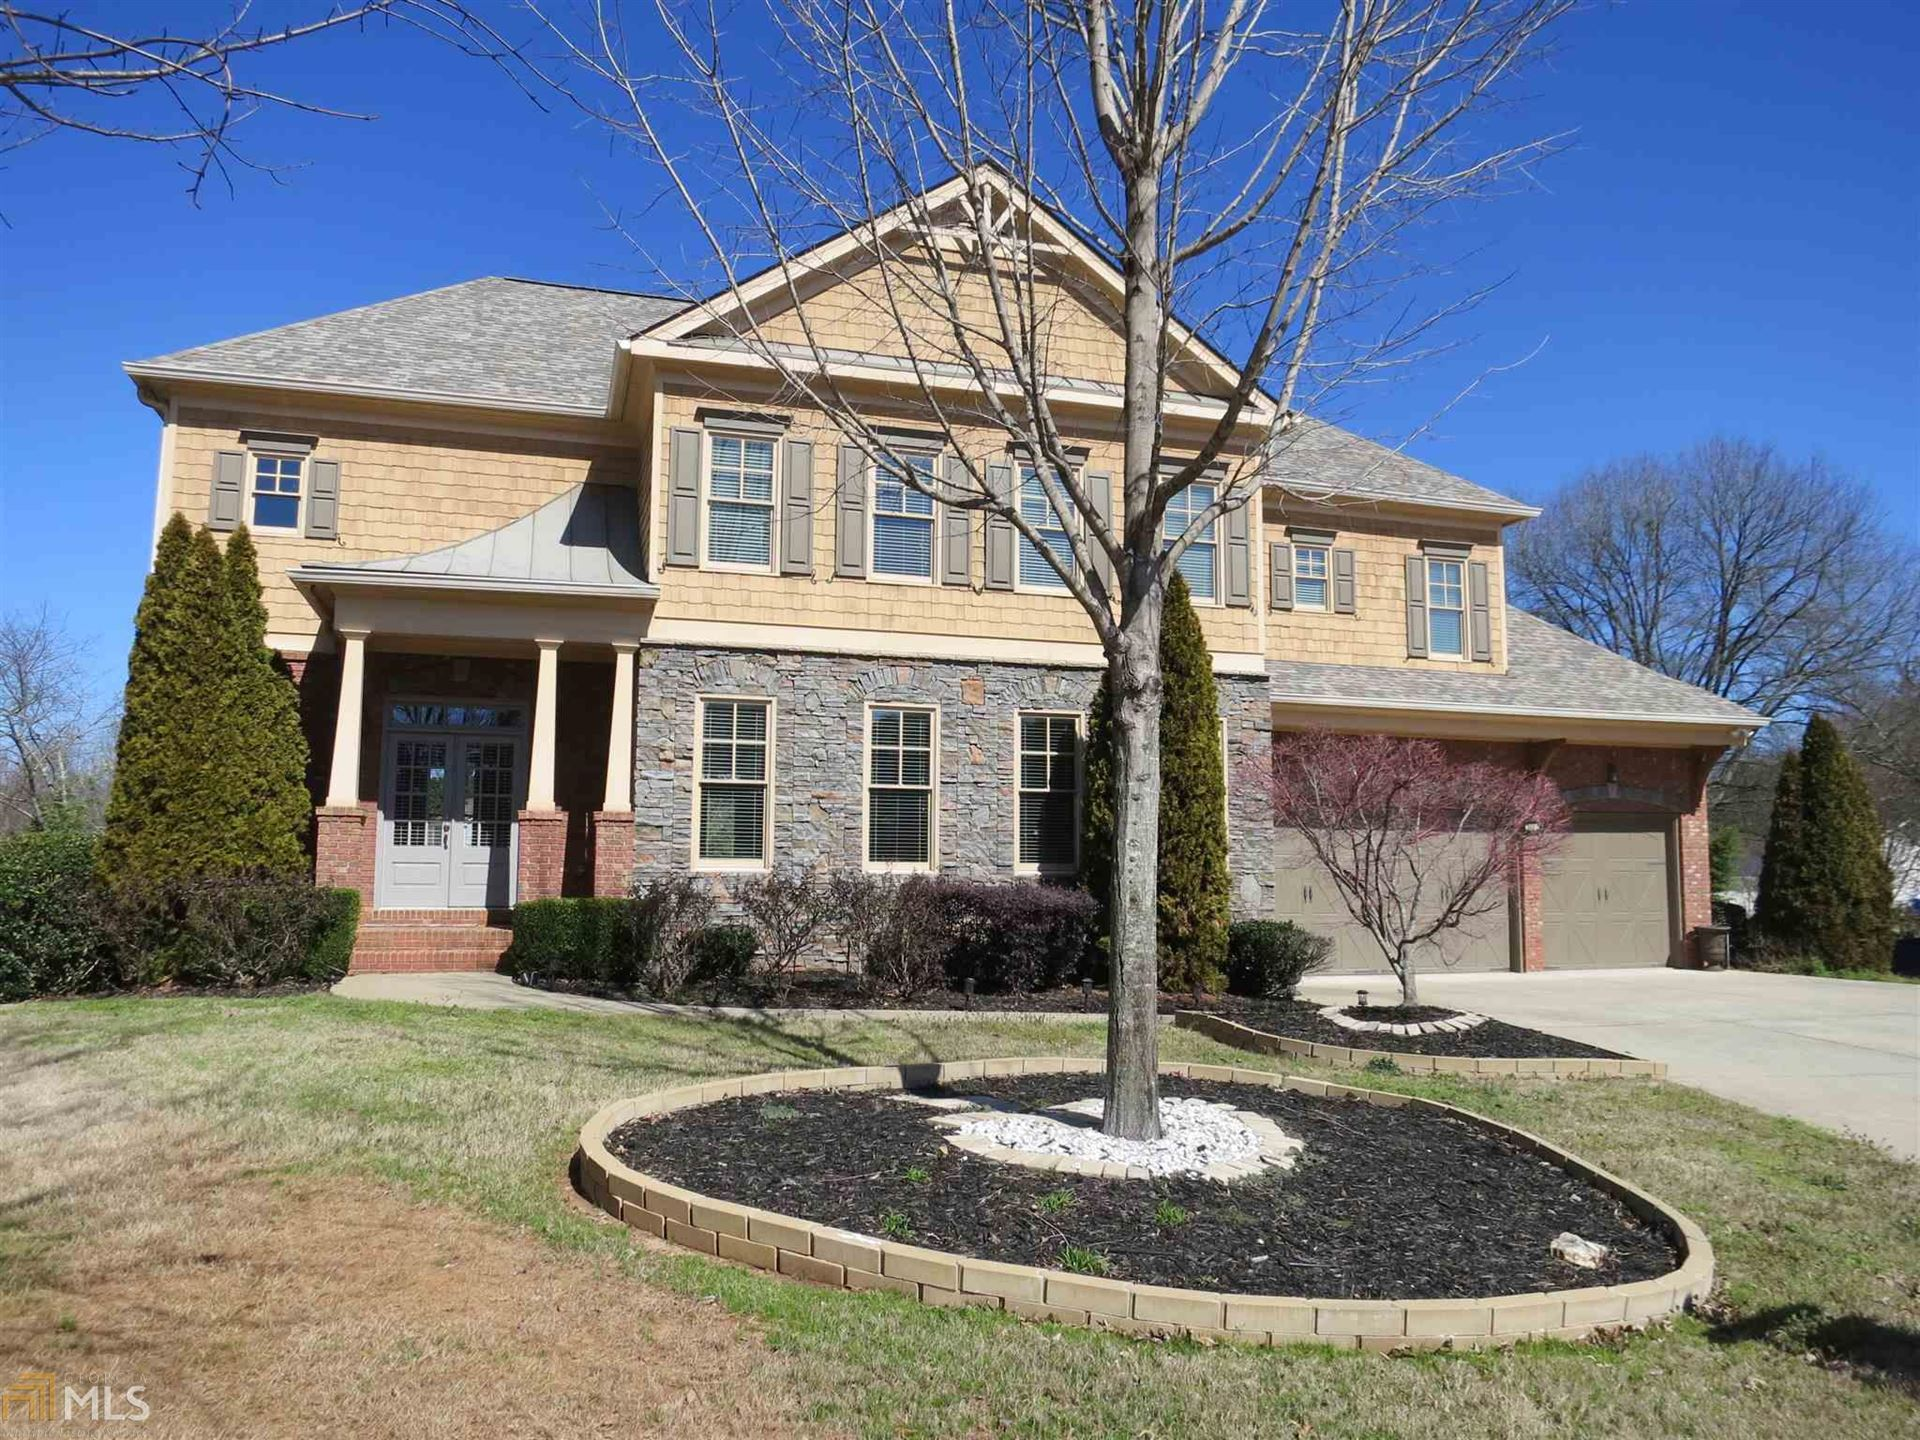 3722 Willow Wind Dr, Marietta, GA 30066 - #: 8714945